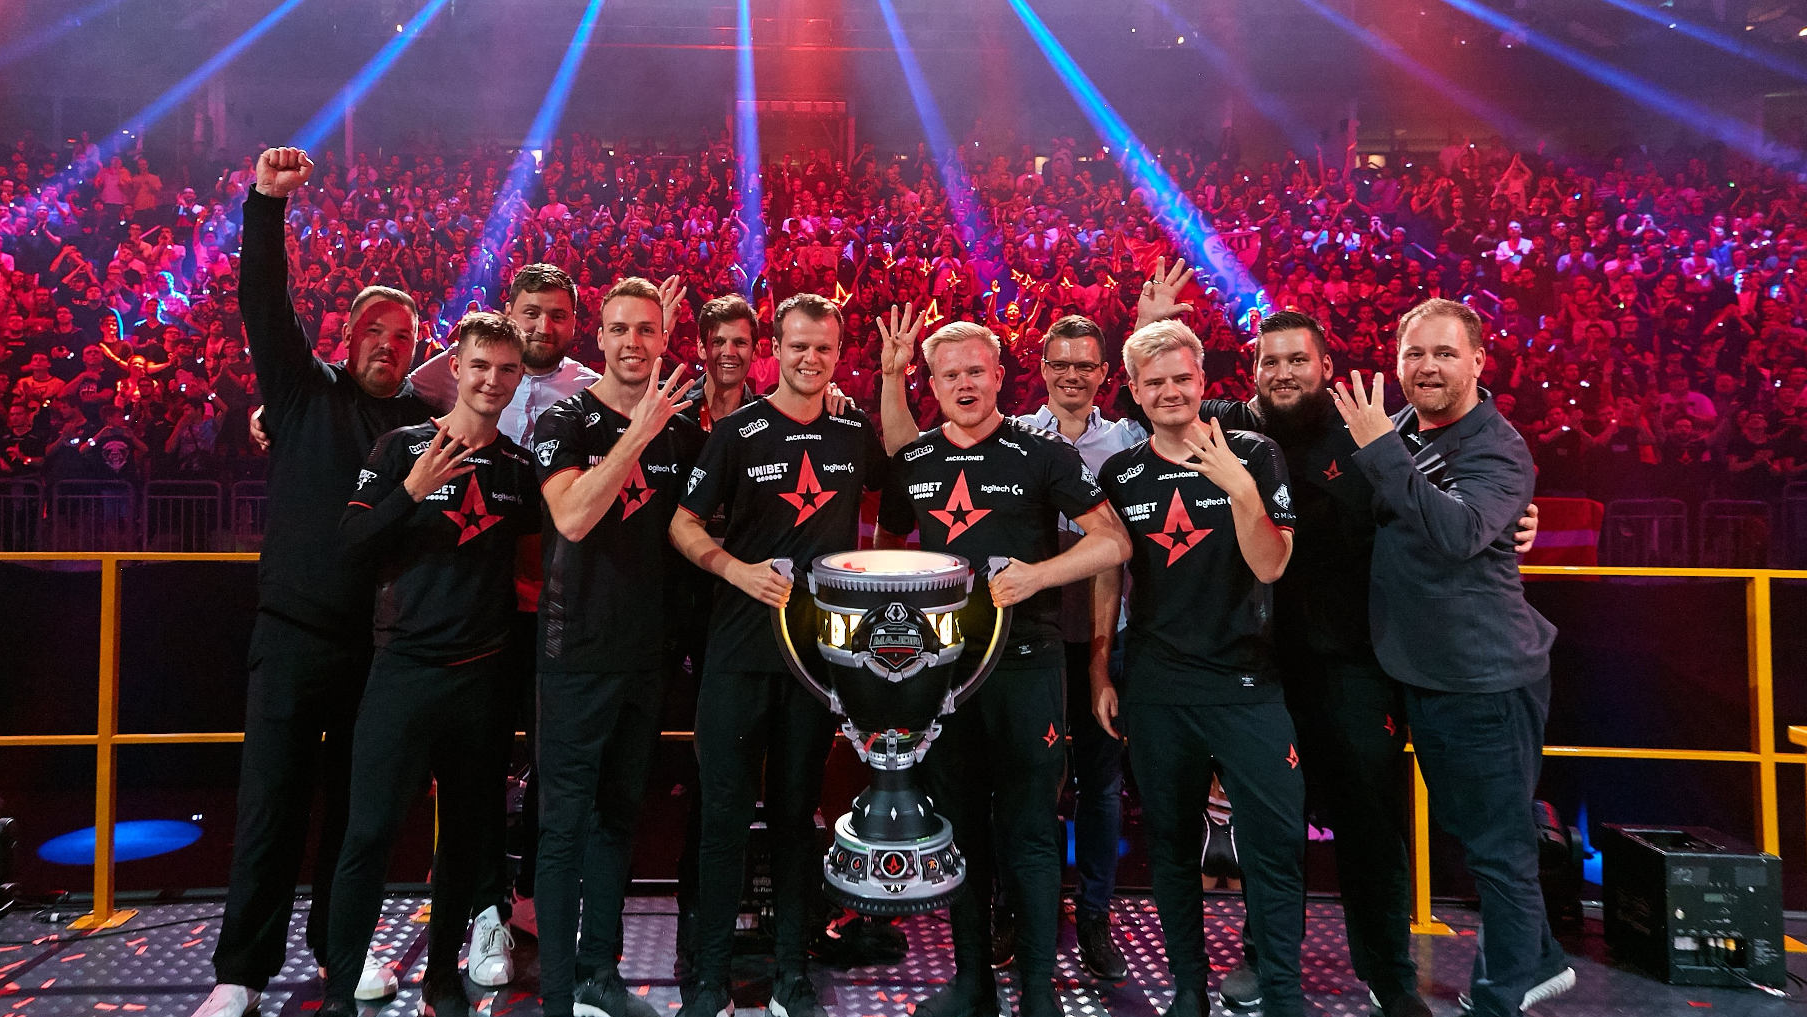 Astralis lifting trophy at Berlin 2019 Major